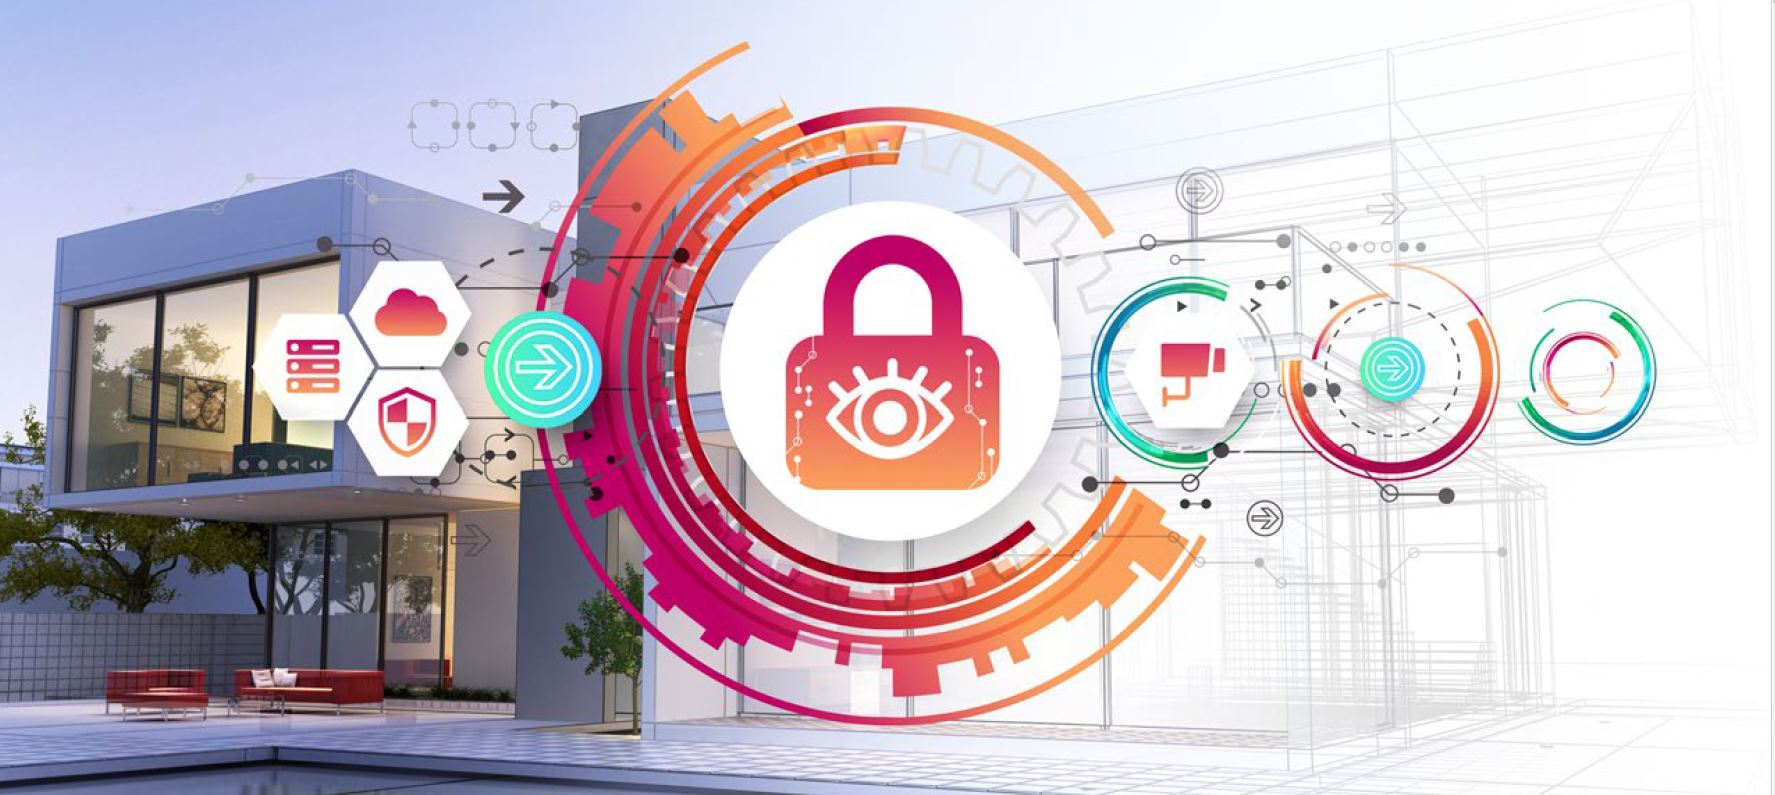 Finding the Right Connected Home Privacy Approach